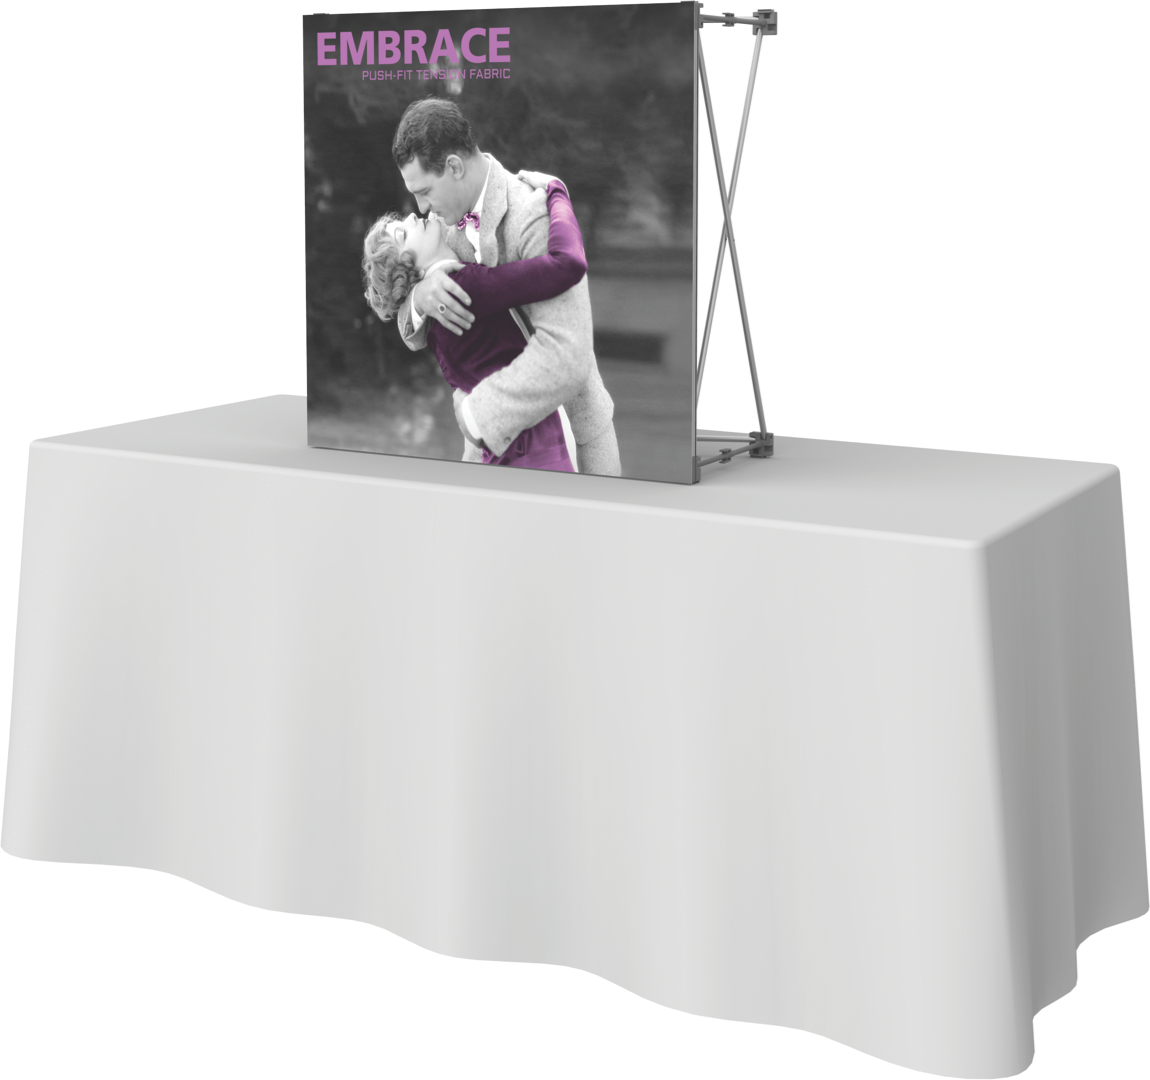 Embrace 1x1 front graphic